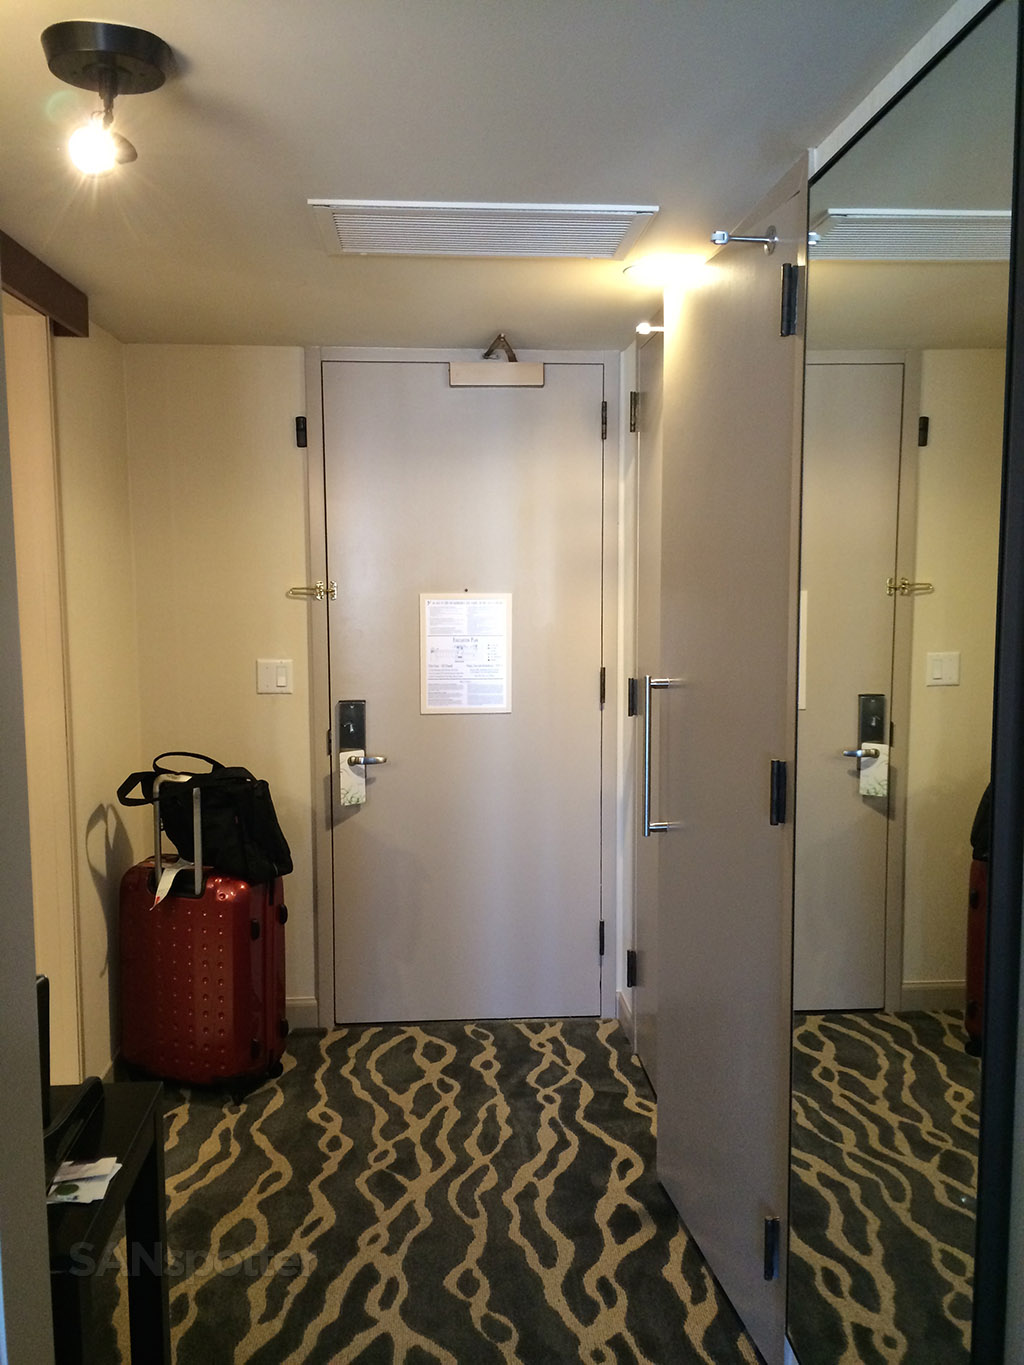 Inside Hotel Room Door: Trip Report: Westin St Francis On Union Square, San